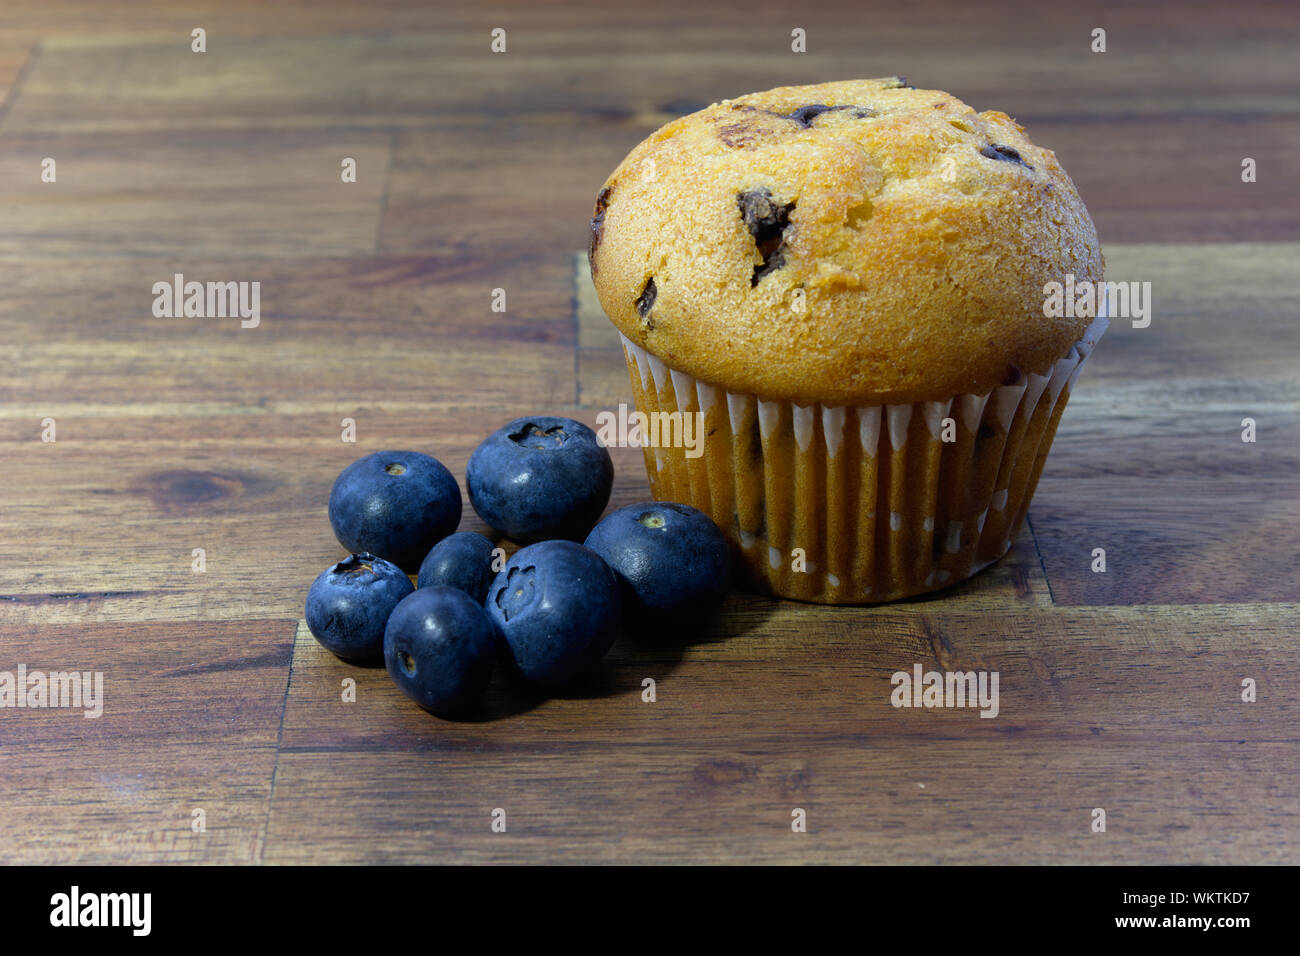 Choc chip muffin with blueberries Stock Photo